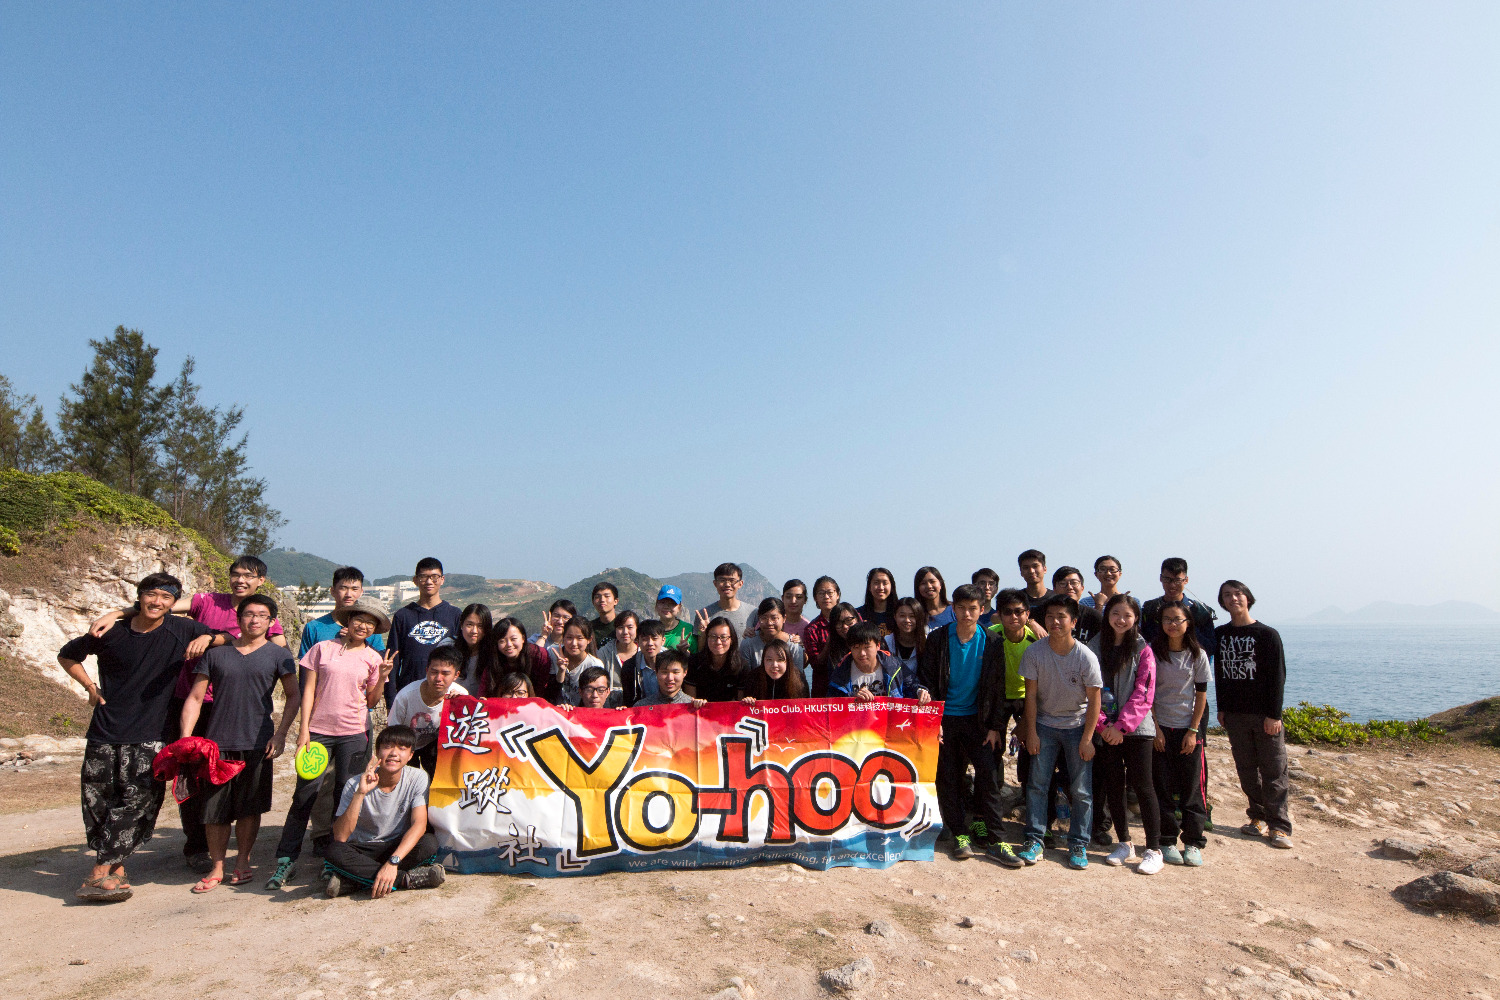 2017 HKUST Yo-hoo Club Winter Camp